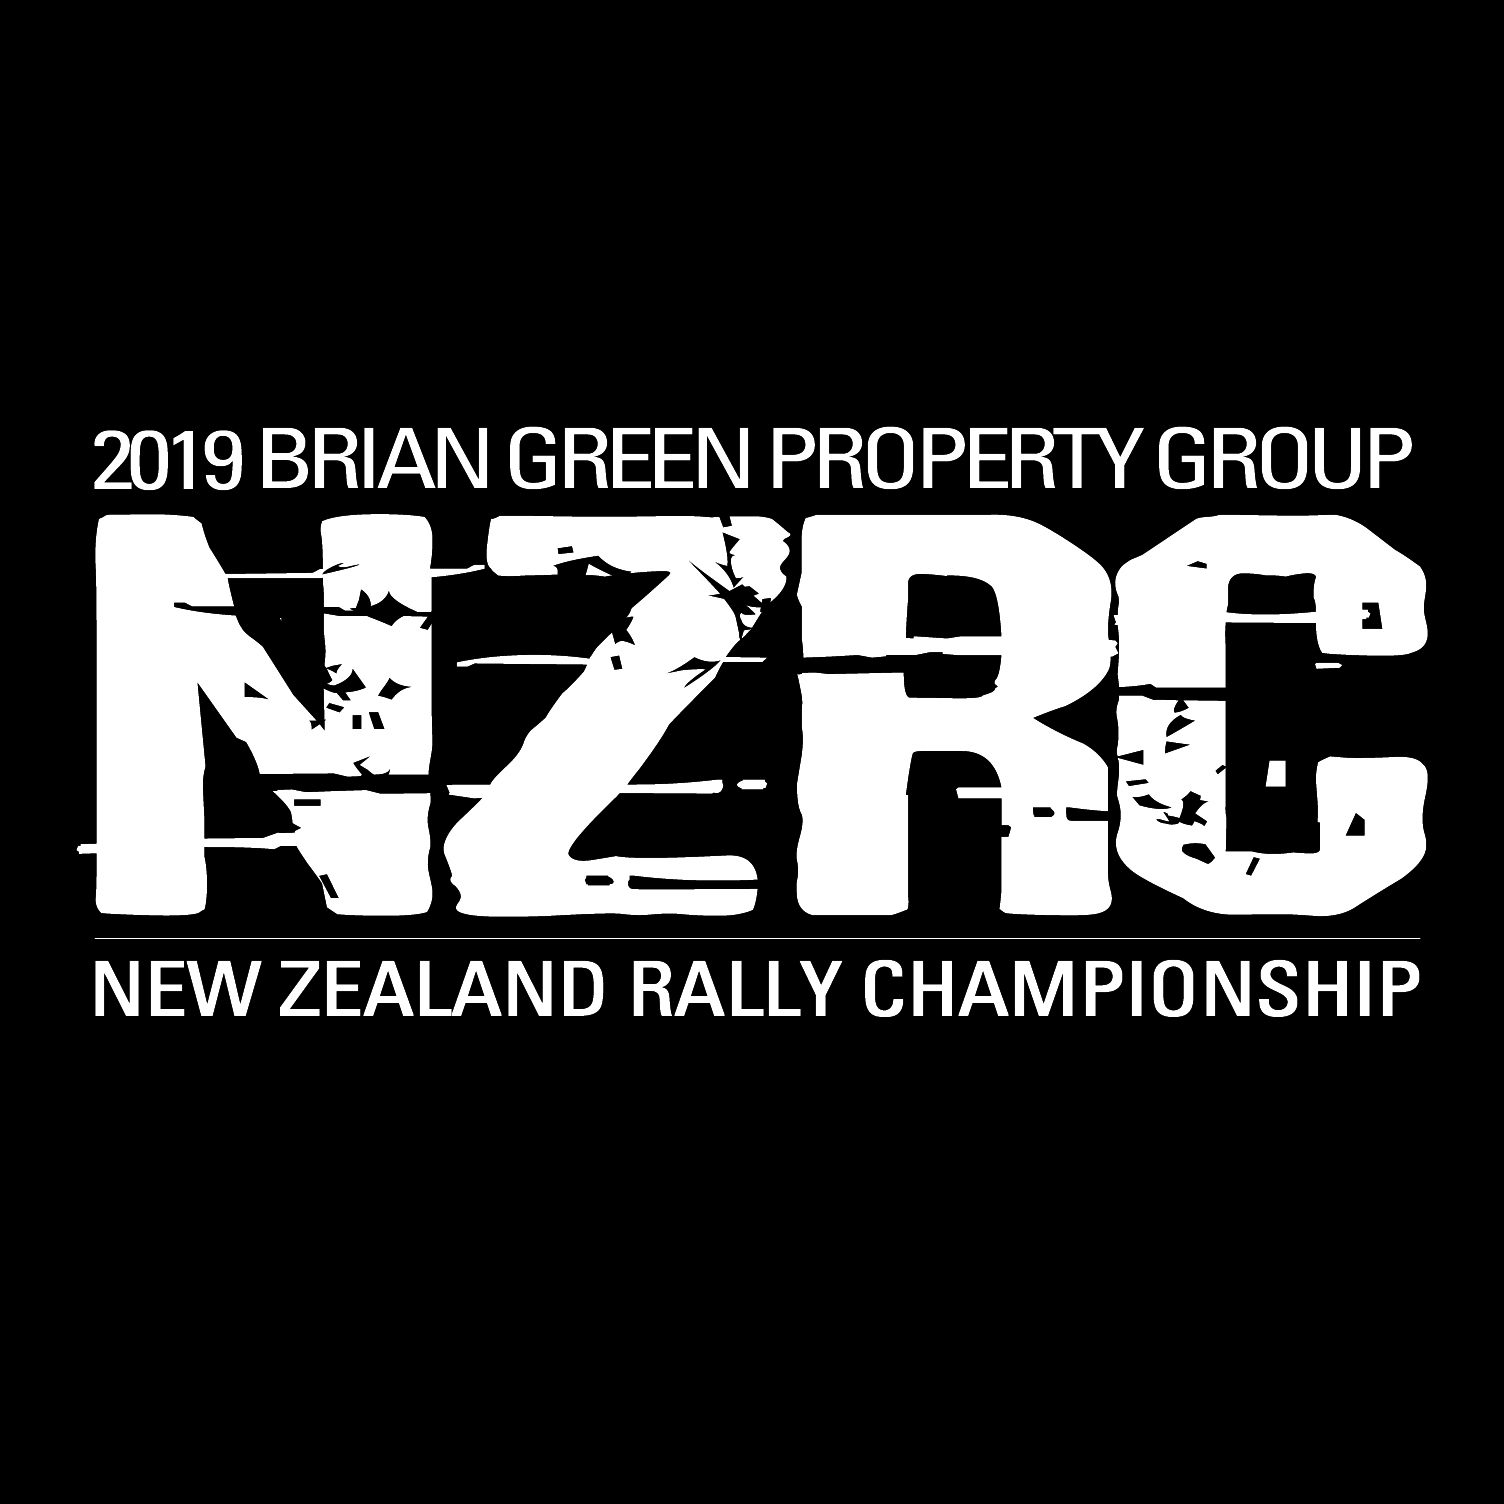 Paddon closes in on fourth NZRC title | :: Brian Green Property Group New Zealand Rally Championship ::